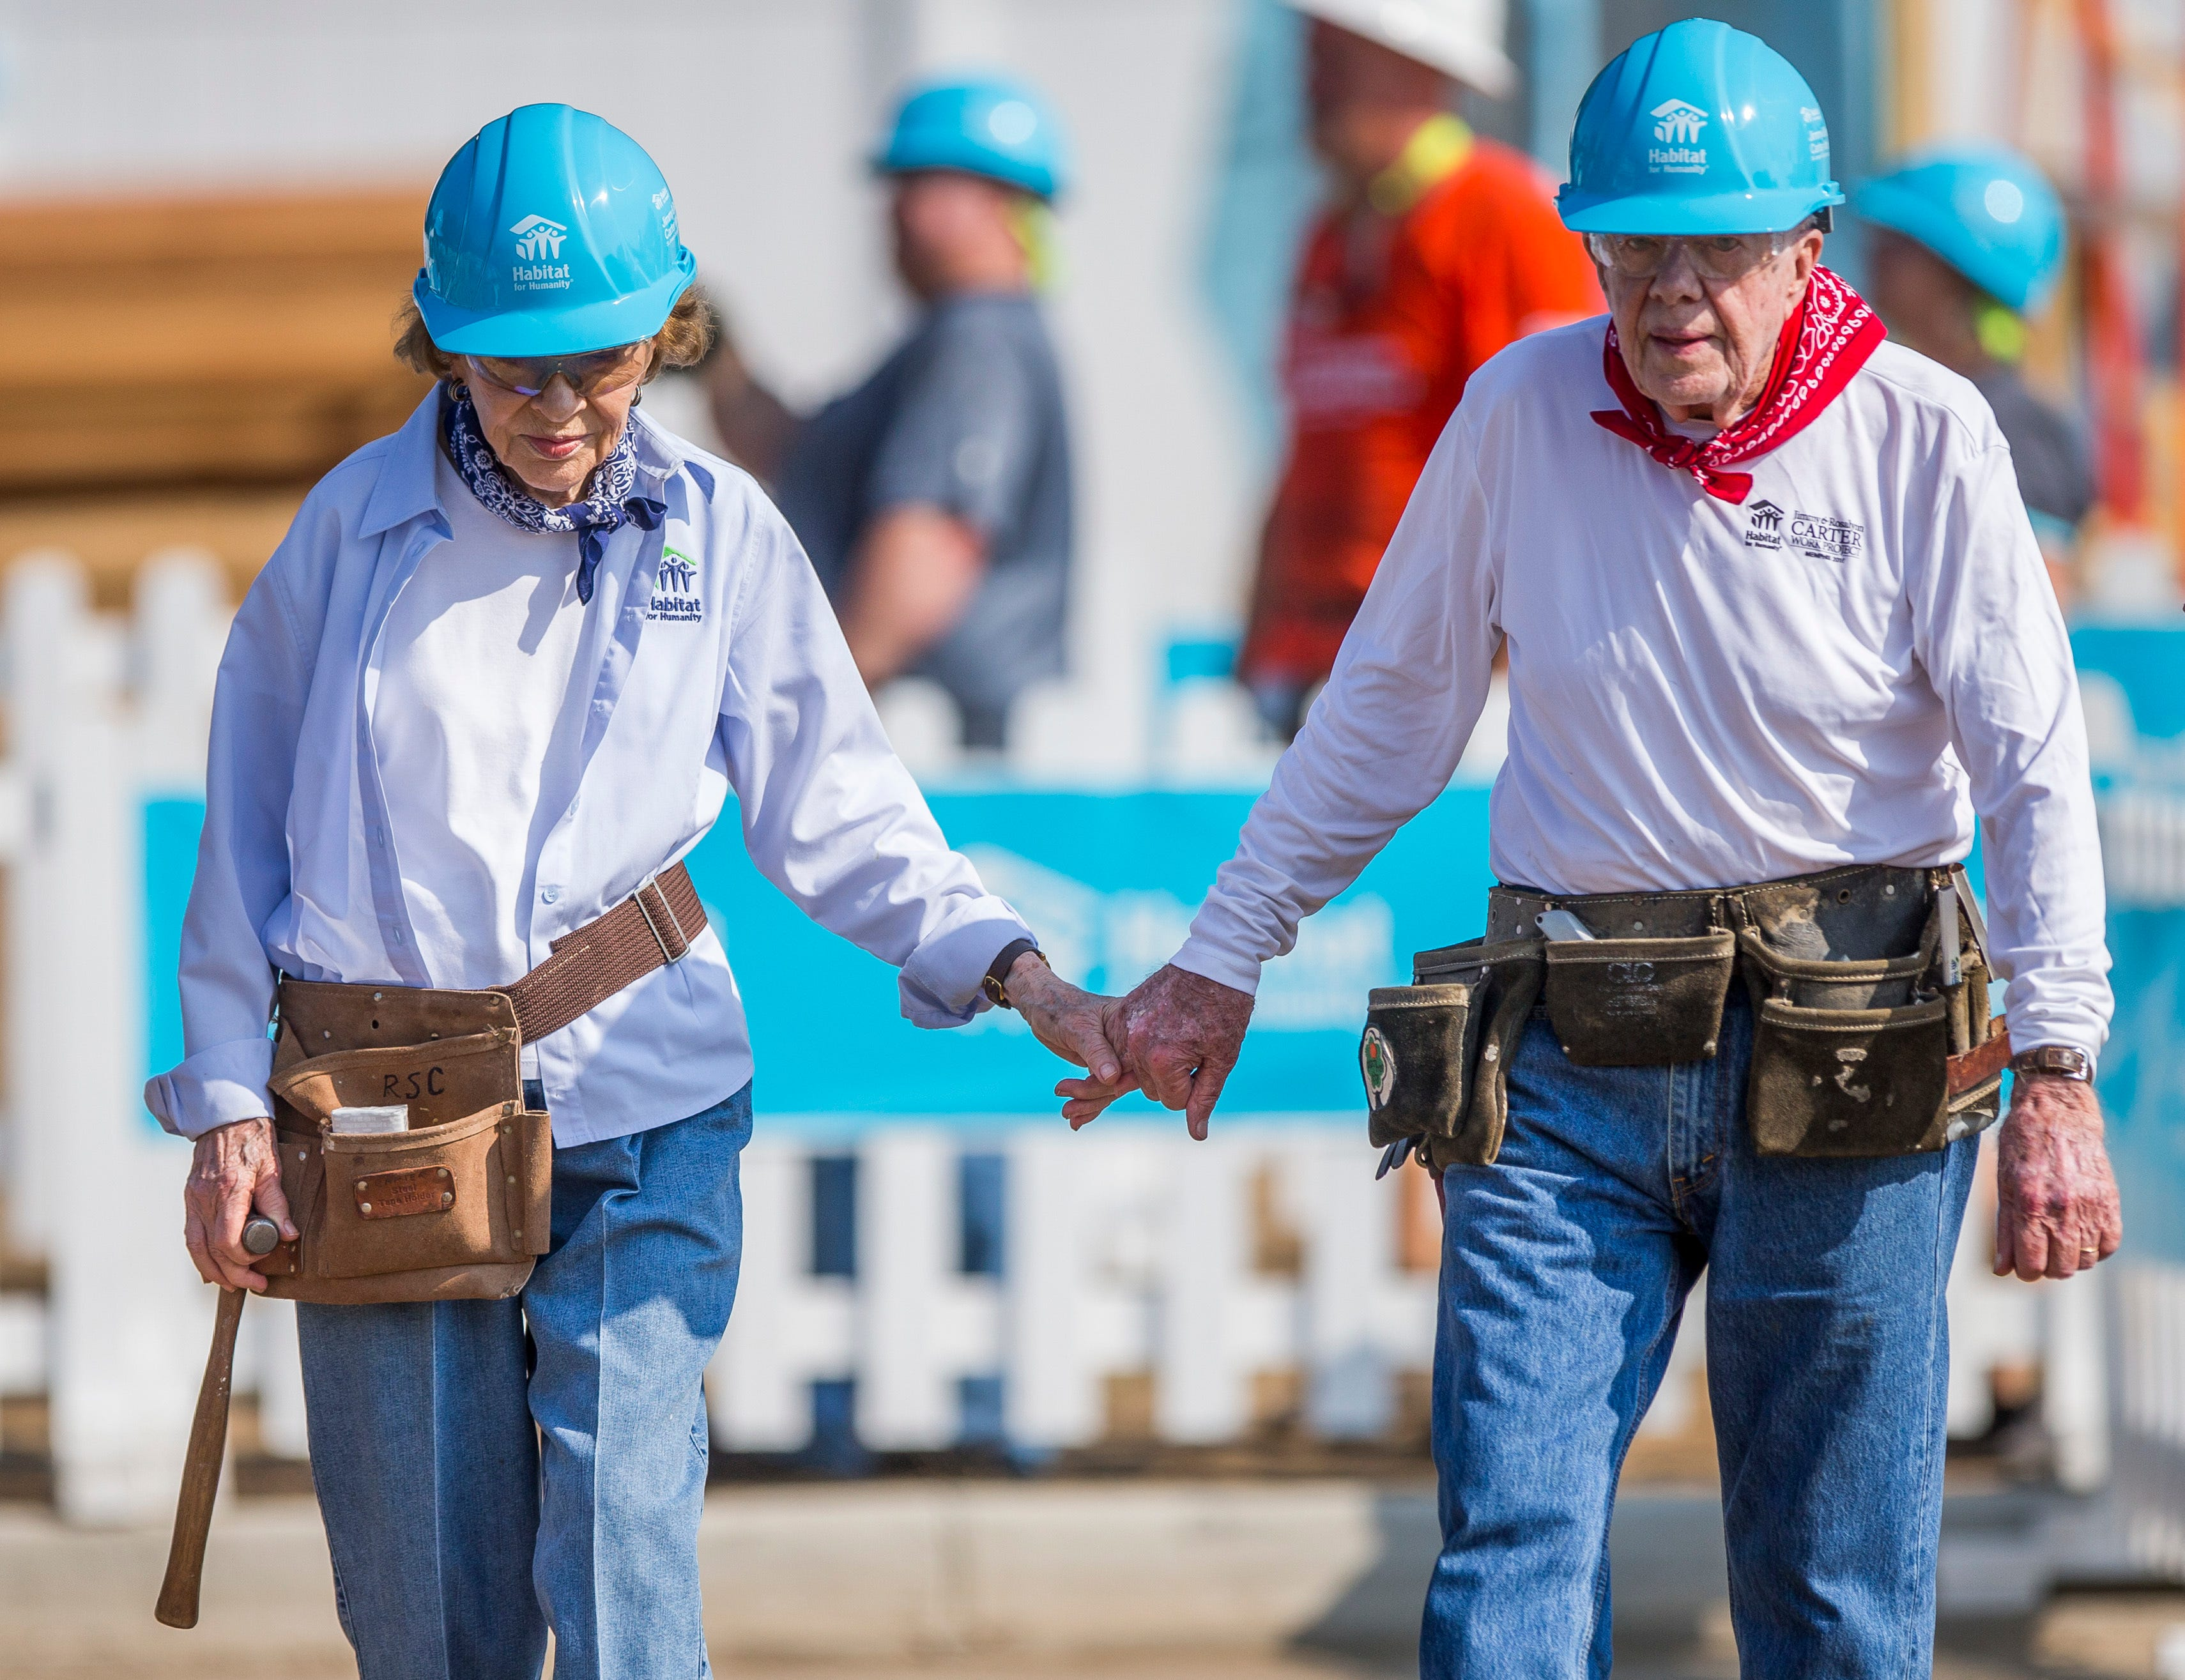 Former President Jimmy Carter holds hands with his wife, former first lady Rosalynn Carter, as they work with other volunteers on site during the first day of the weeklong Jimmy & Rosalynn Carter Work Project, their 35th work project with Habitat for Humanity, on Monday, Aug. 27, 2018, in Mishawaka, Ind.